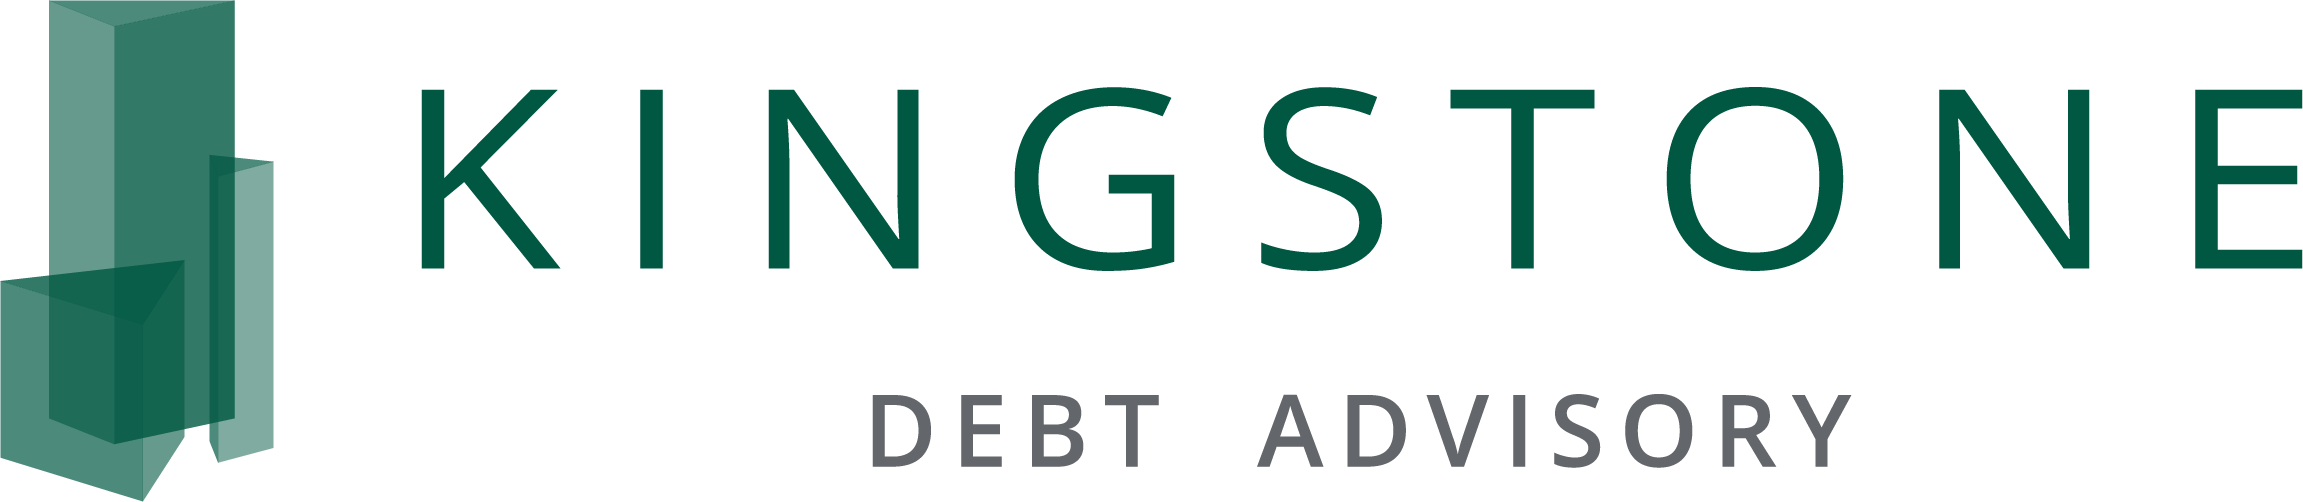 Kingstone Debt Advisory